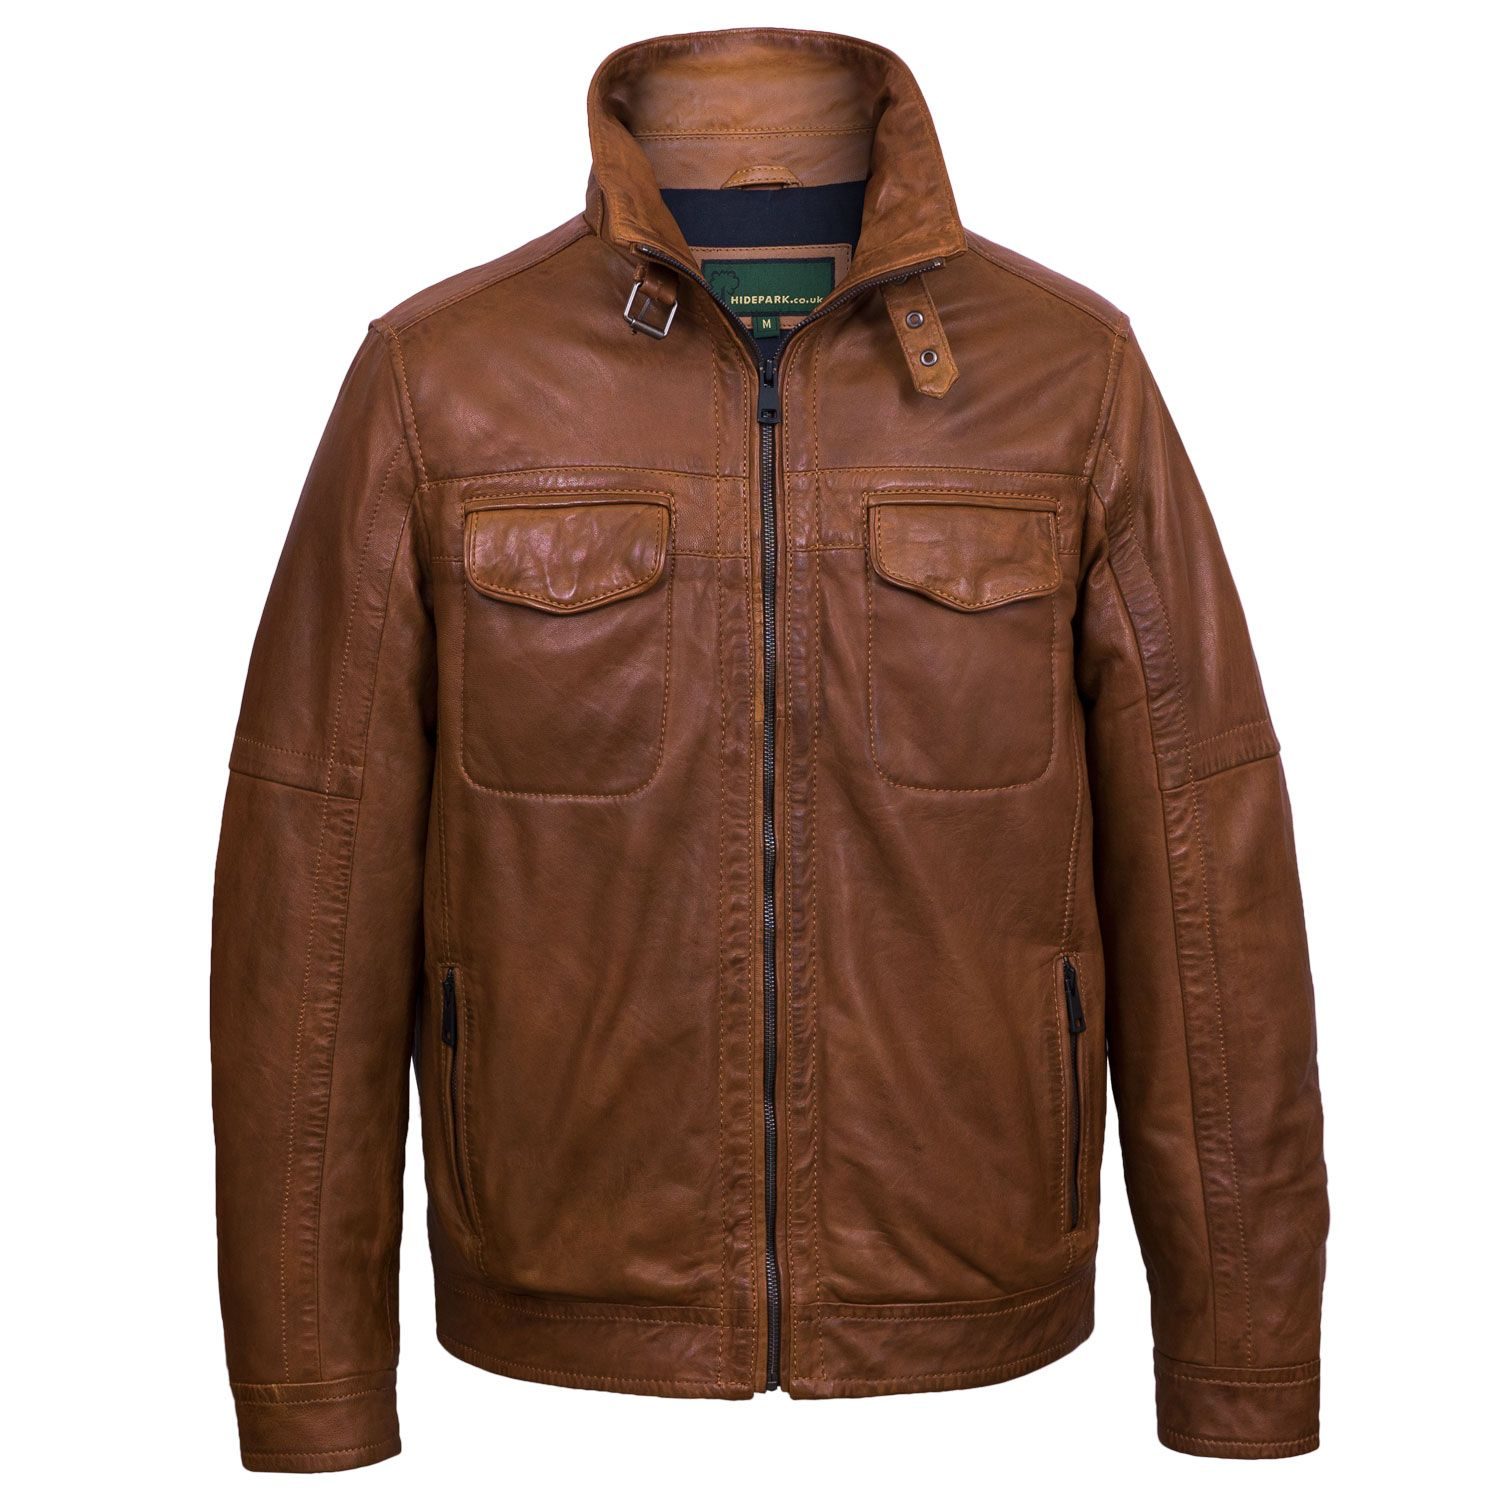 Jake Men's Tan Leather Jacket Tan leather jackets